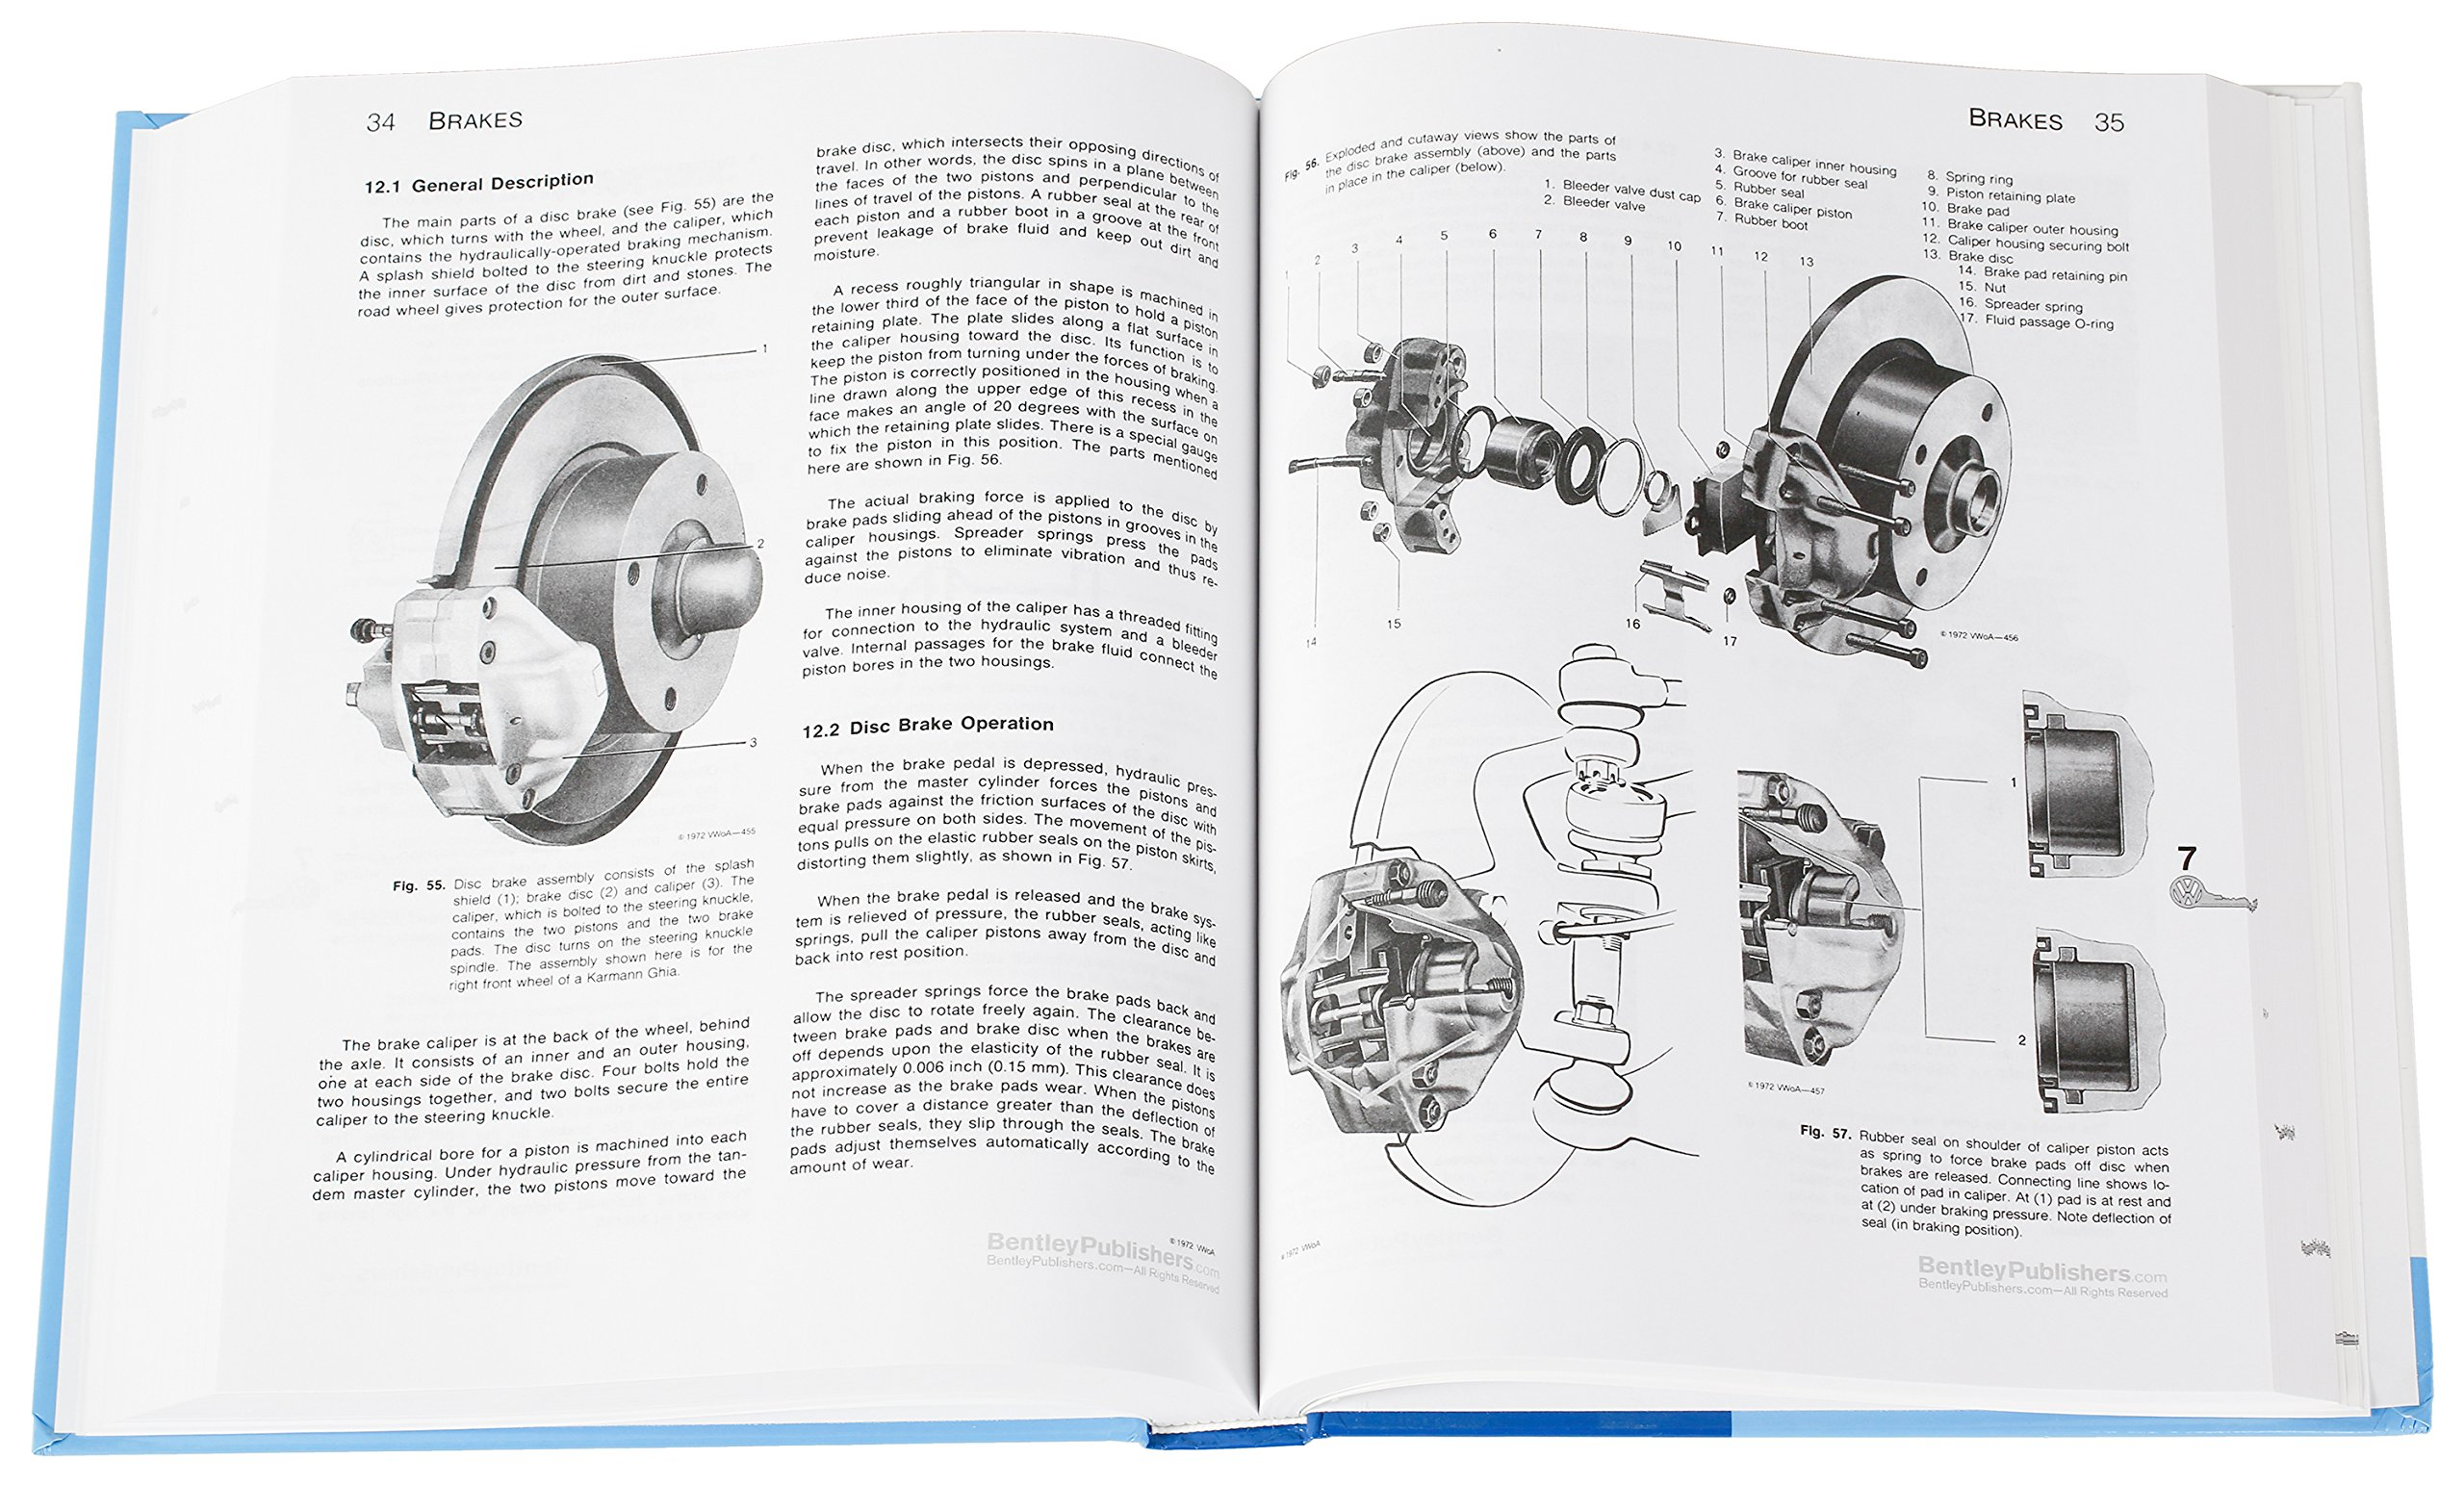 Volkswagen Beetle And Karmann Ghia Official Service Manual Type 1 Wiring Electric Oven Uk Free Download Diagrams Pictures 1966 1967 1968 1969 Bentley Publishers 9780837616469 Books